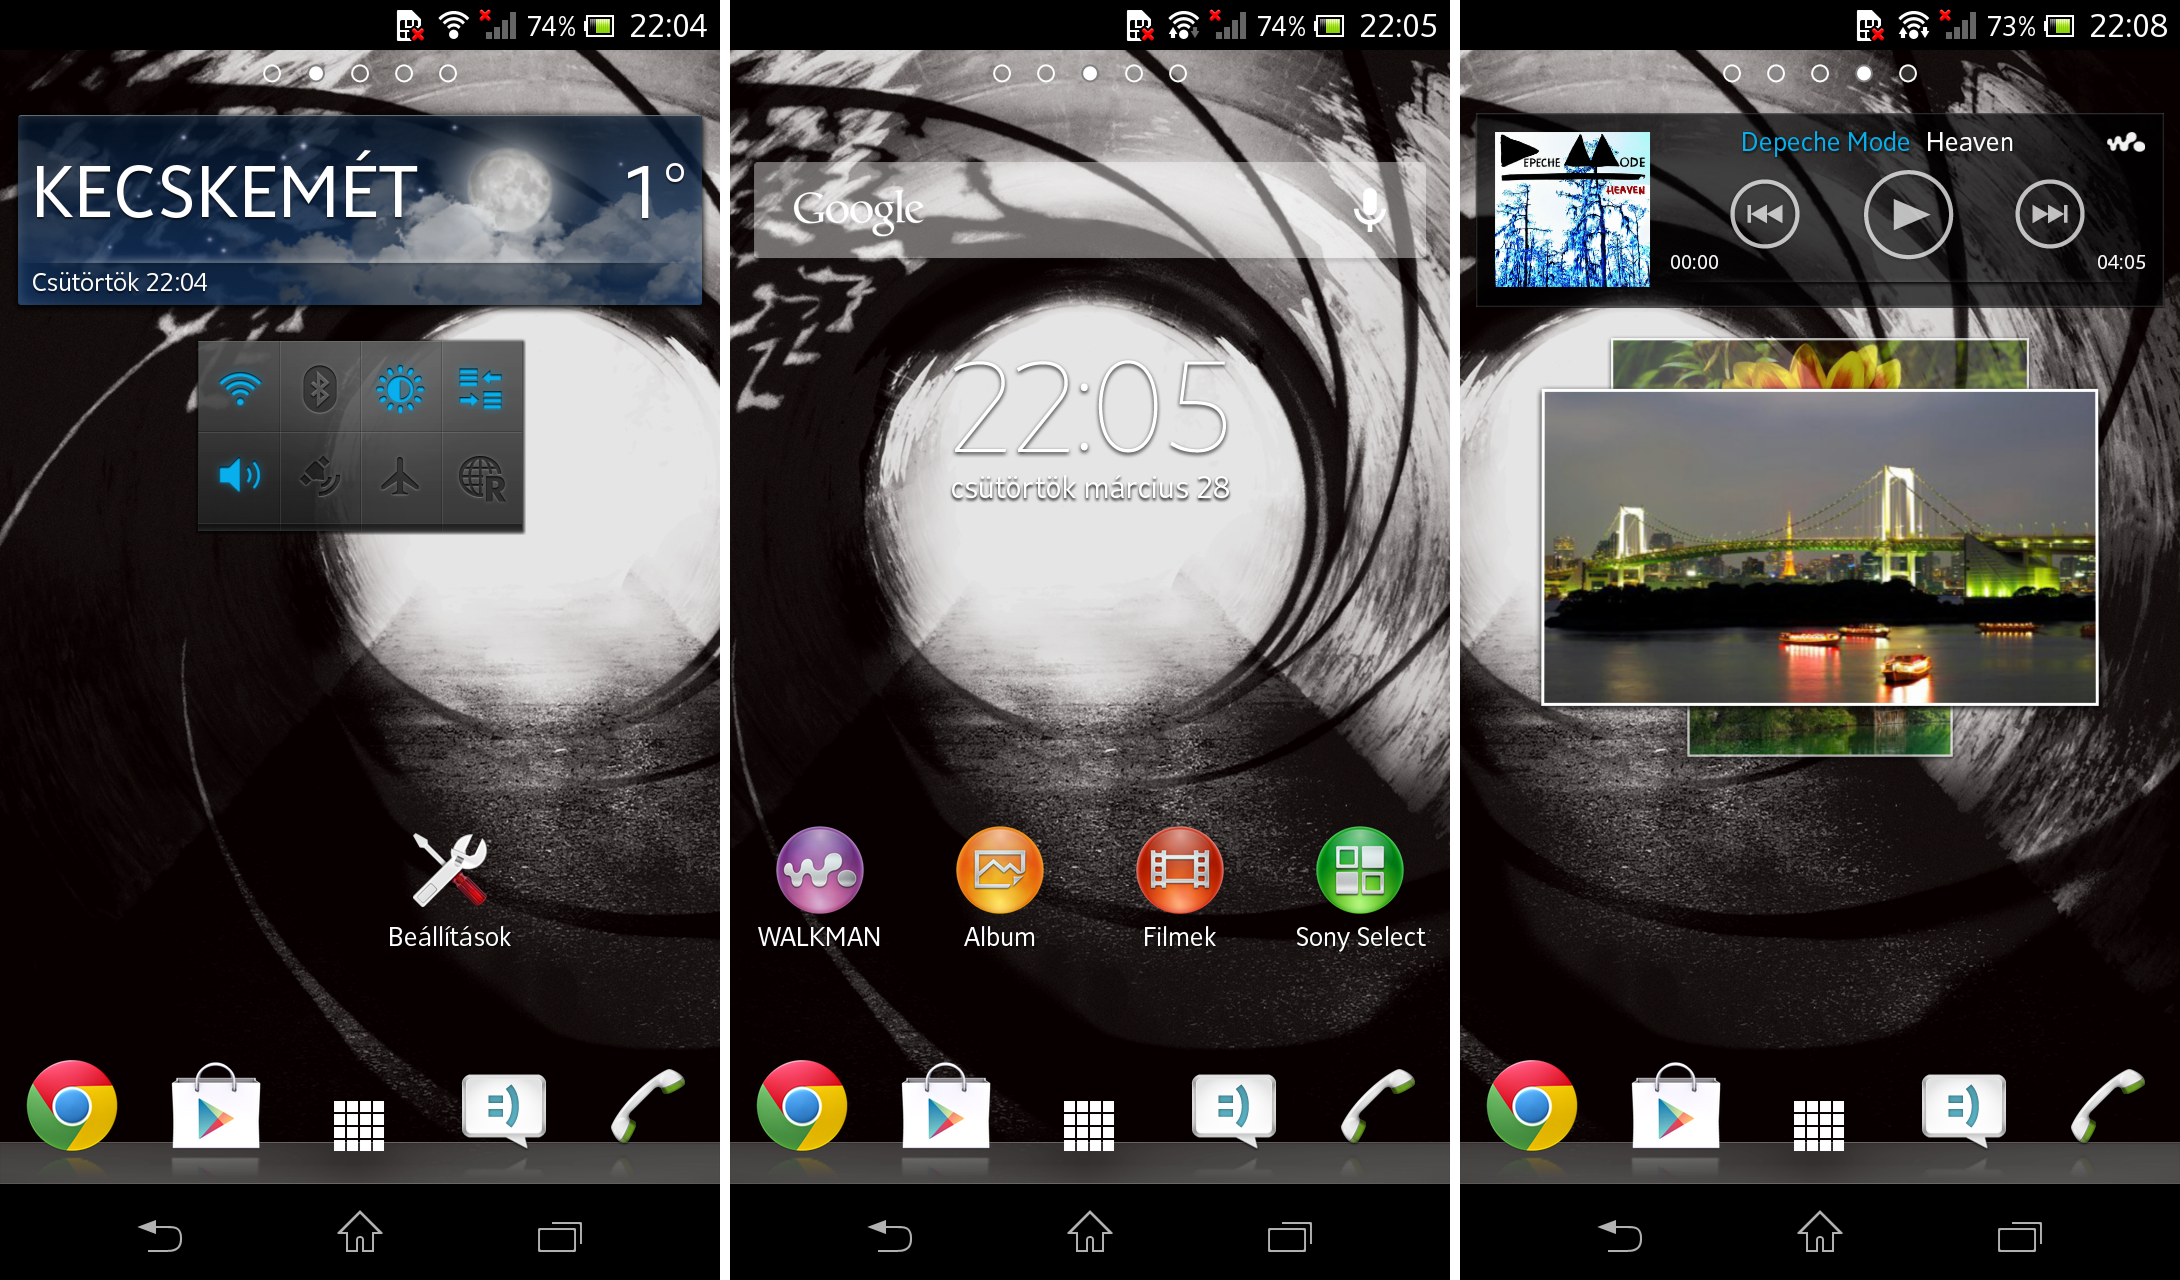 Xperia T homescreen